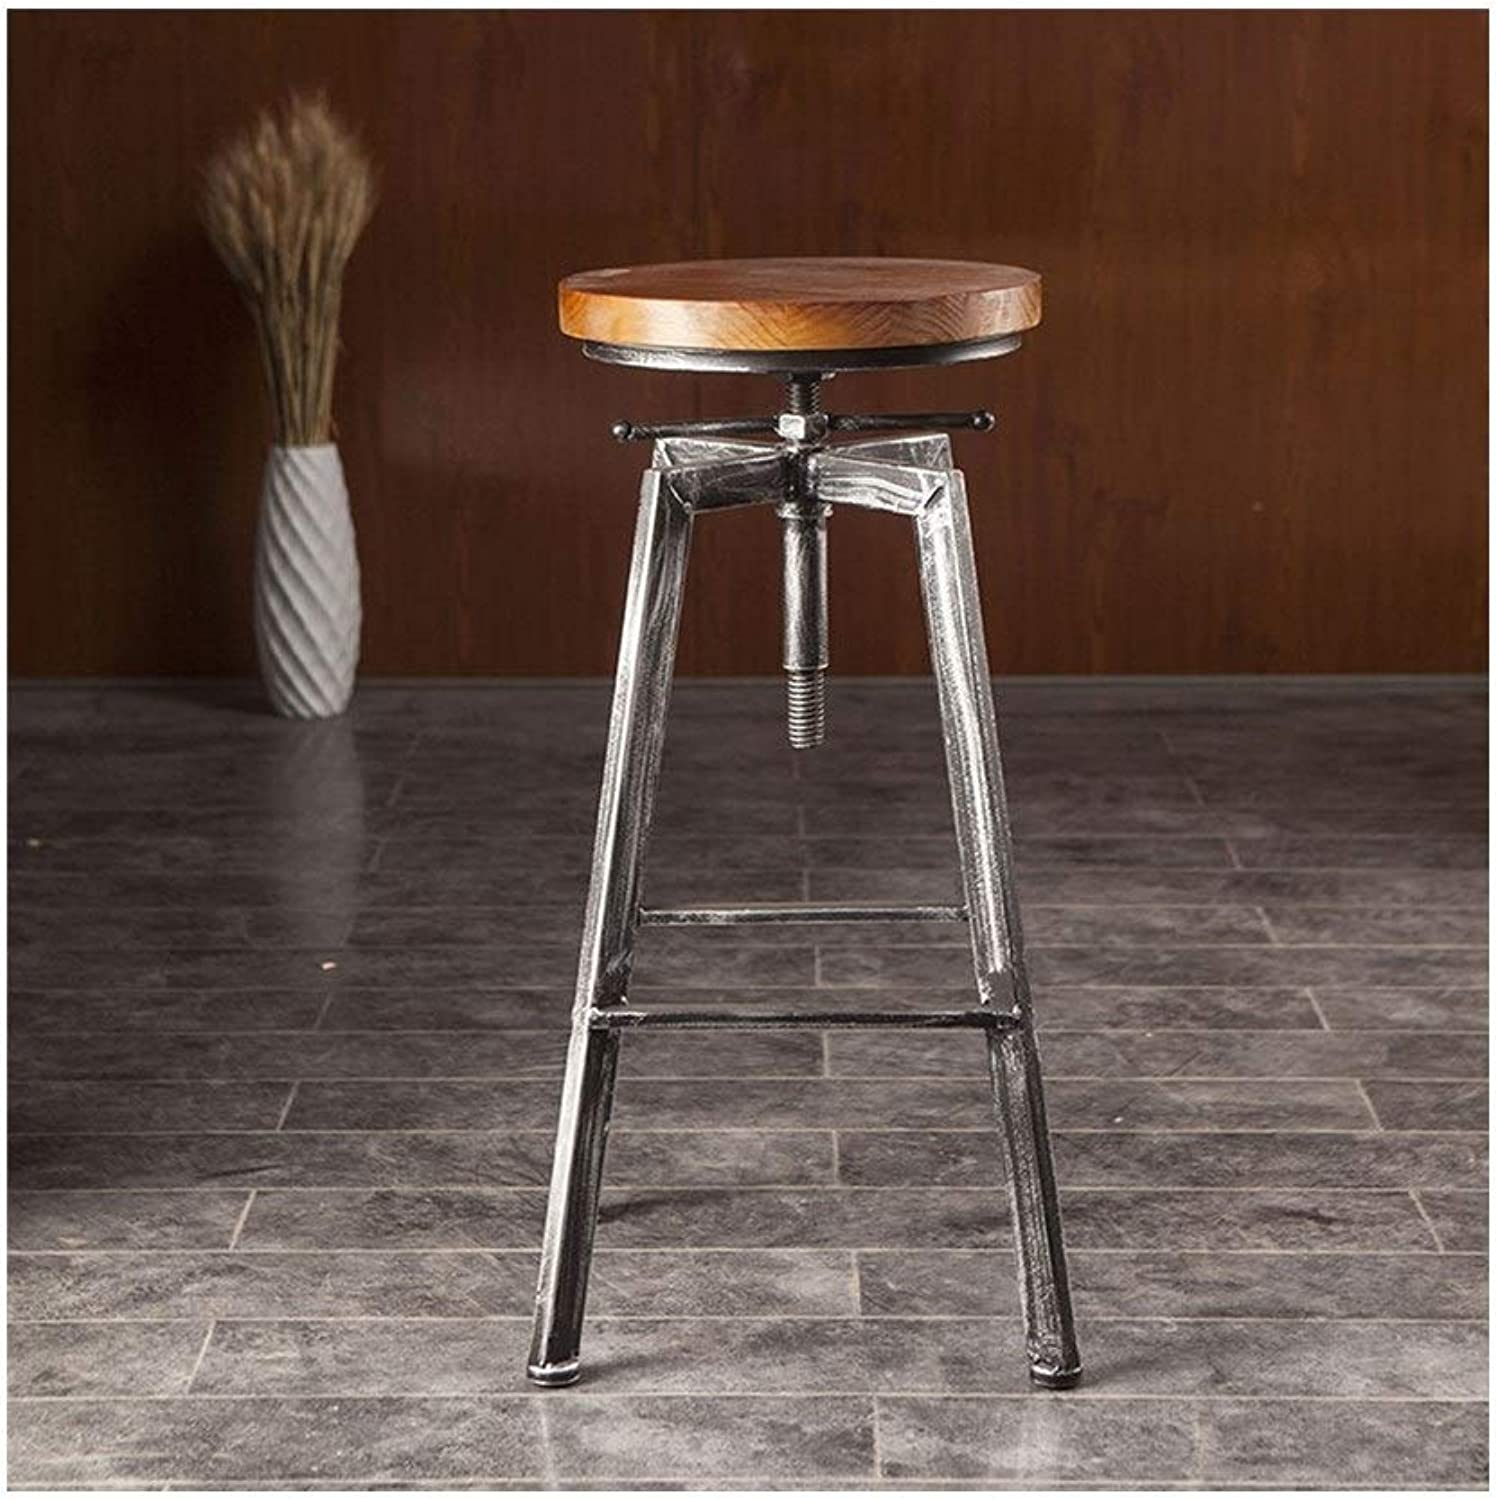 American Adjustable Wrought Iron Bar Stool Coffee Restaurant Bar Chair Leisure High Stool 0521BAR